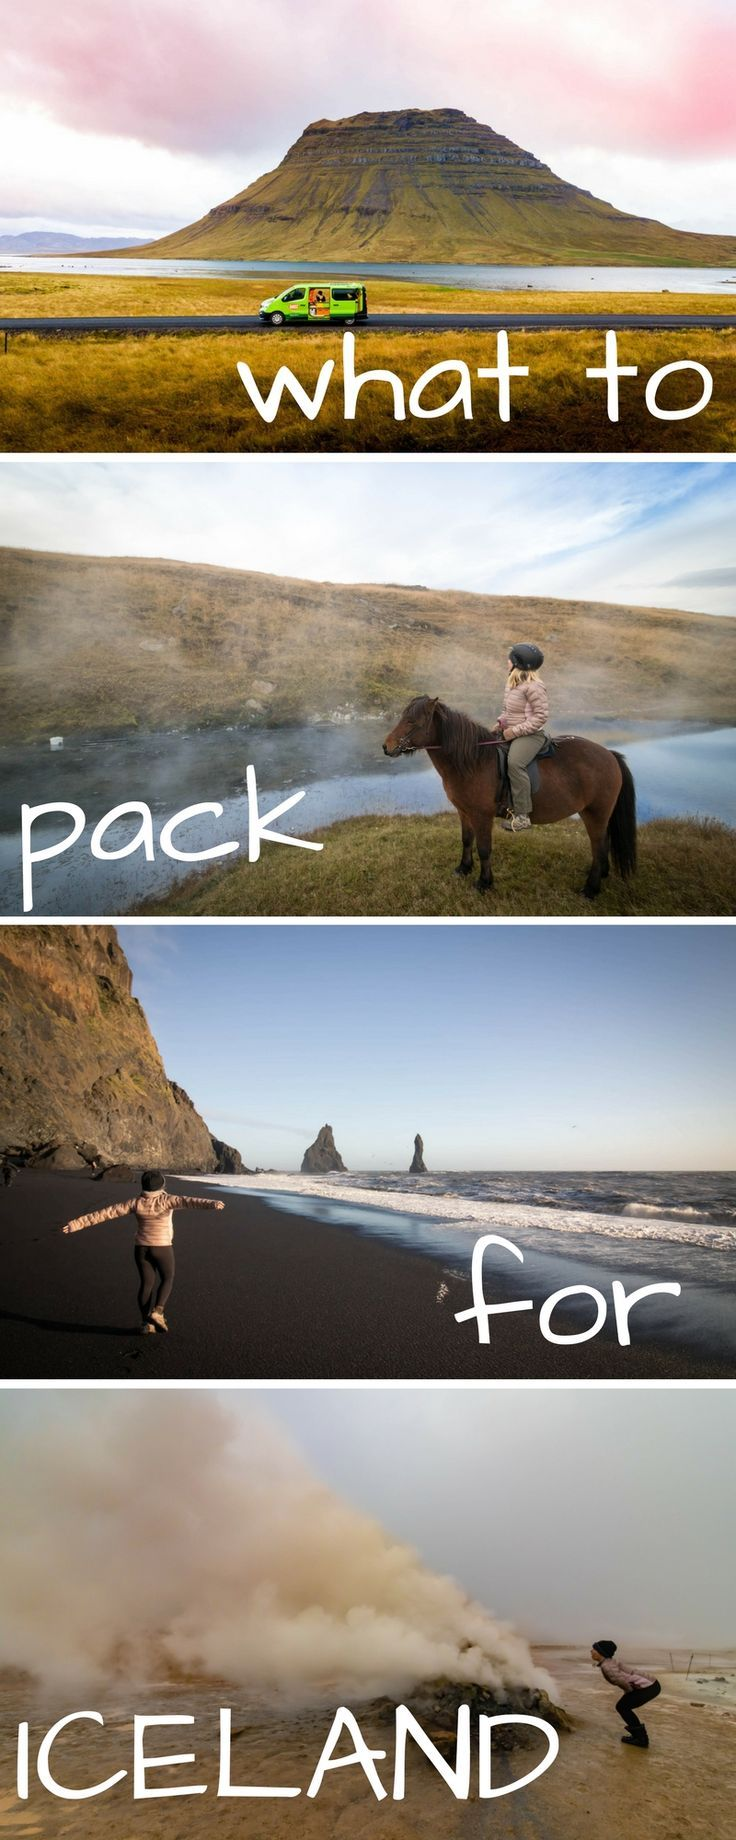 All you need to pack in your luggage for your travel to Iceland. Enjoy your Iceland holiday!